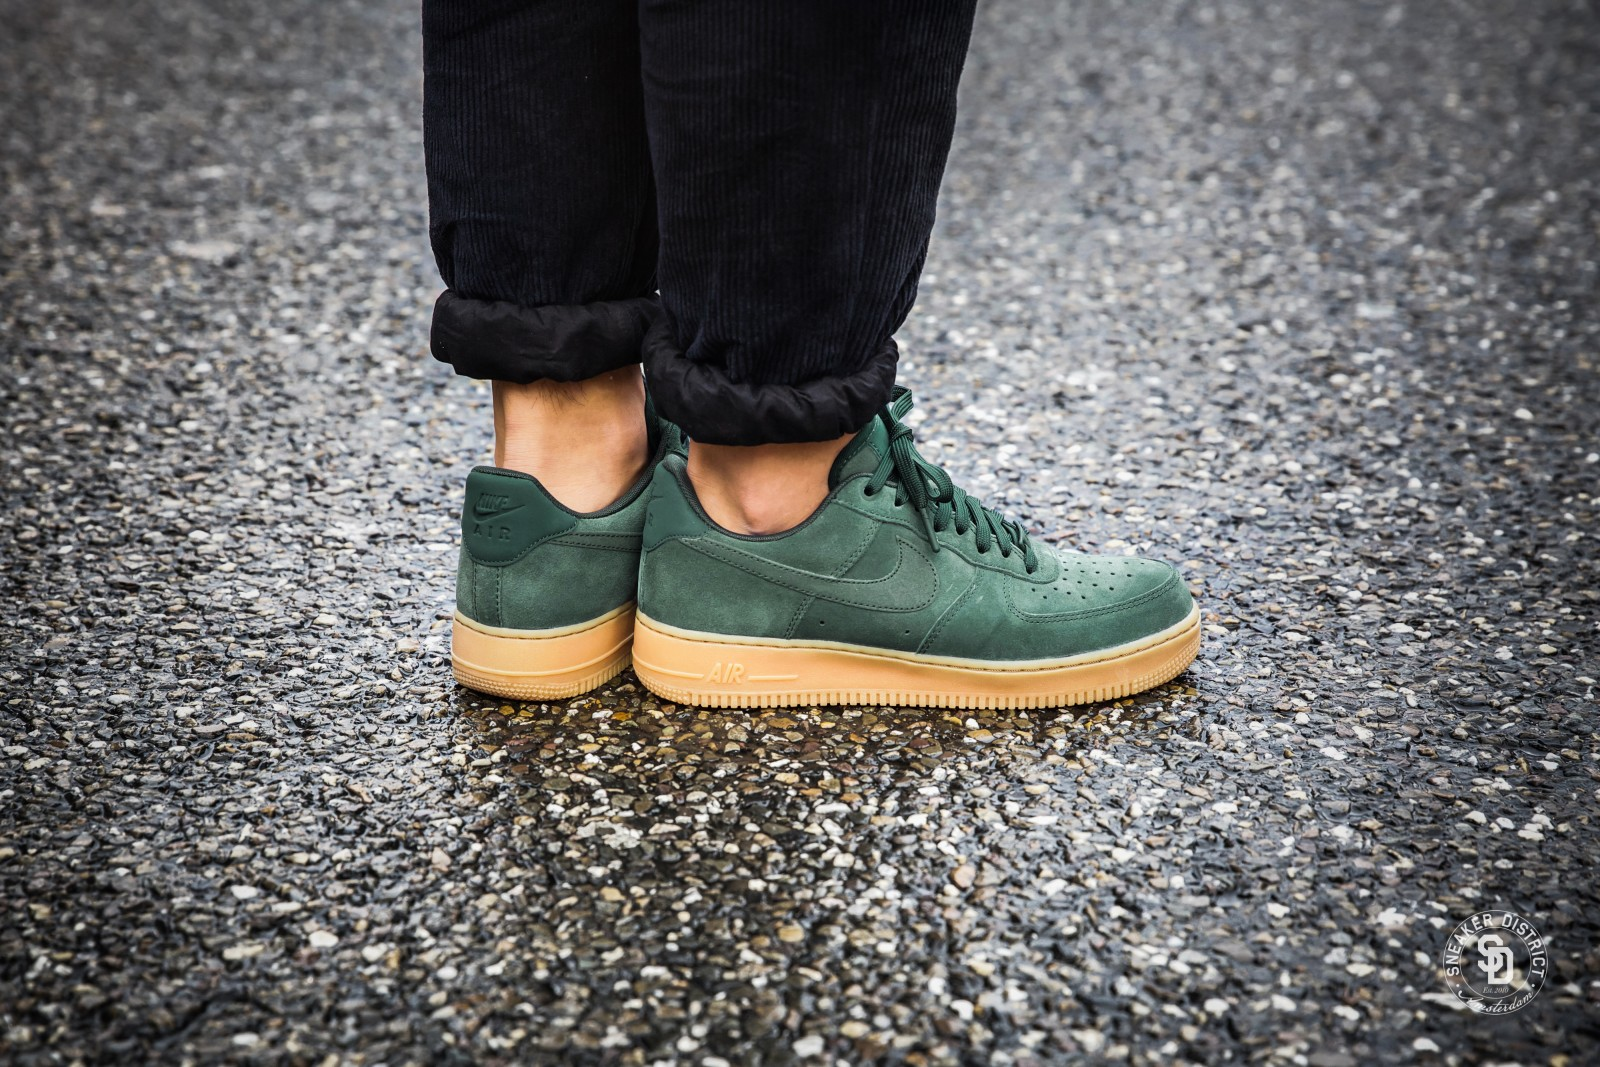 Nike Air Force 1 '07 LV8 Suede Outdoor